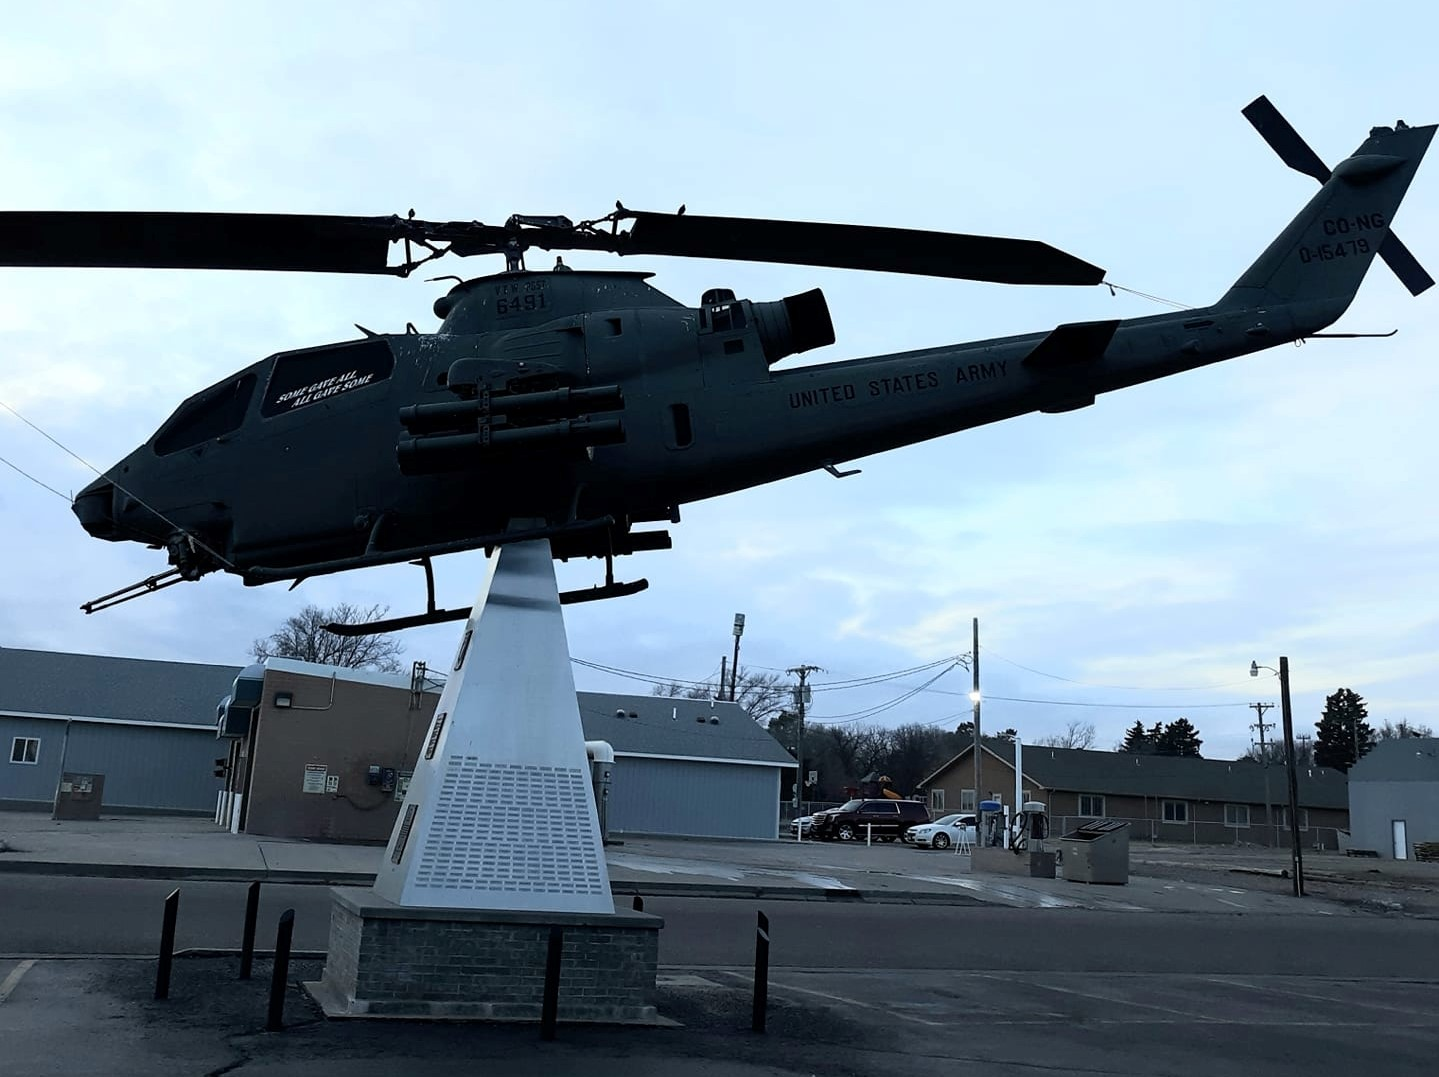 helicopter decor in parking lot